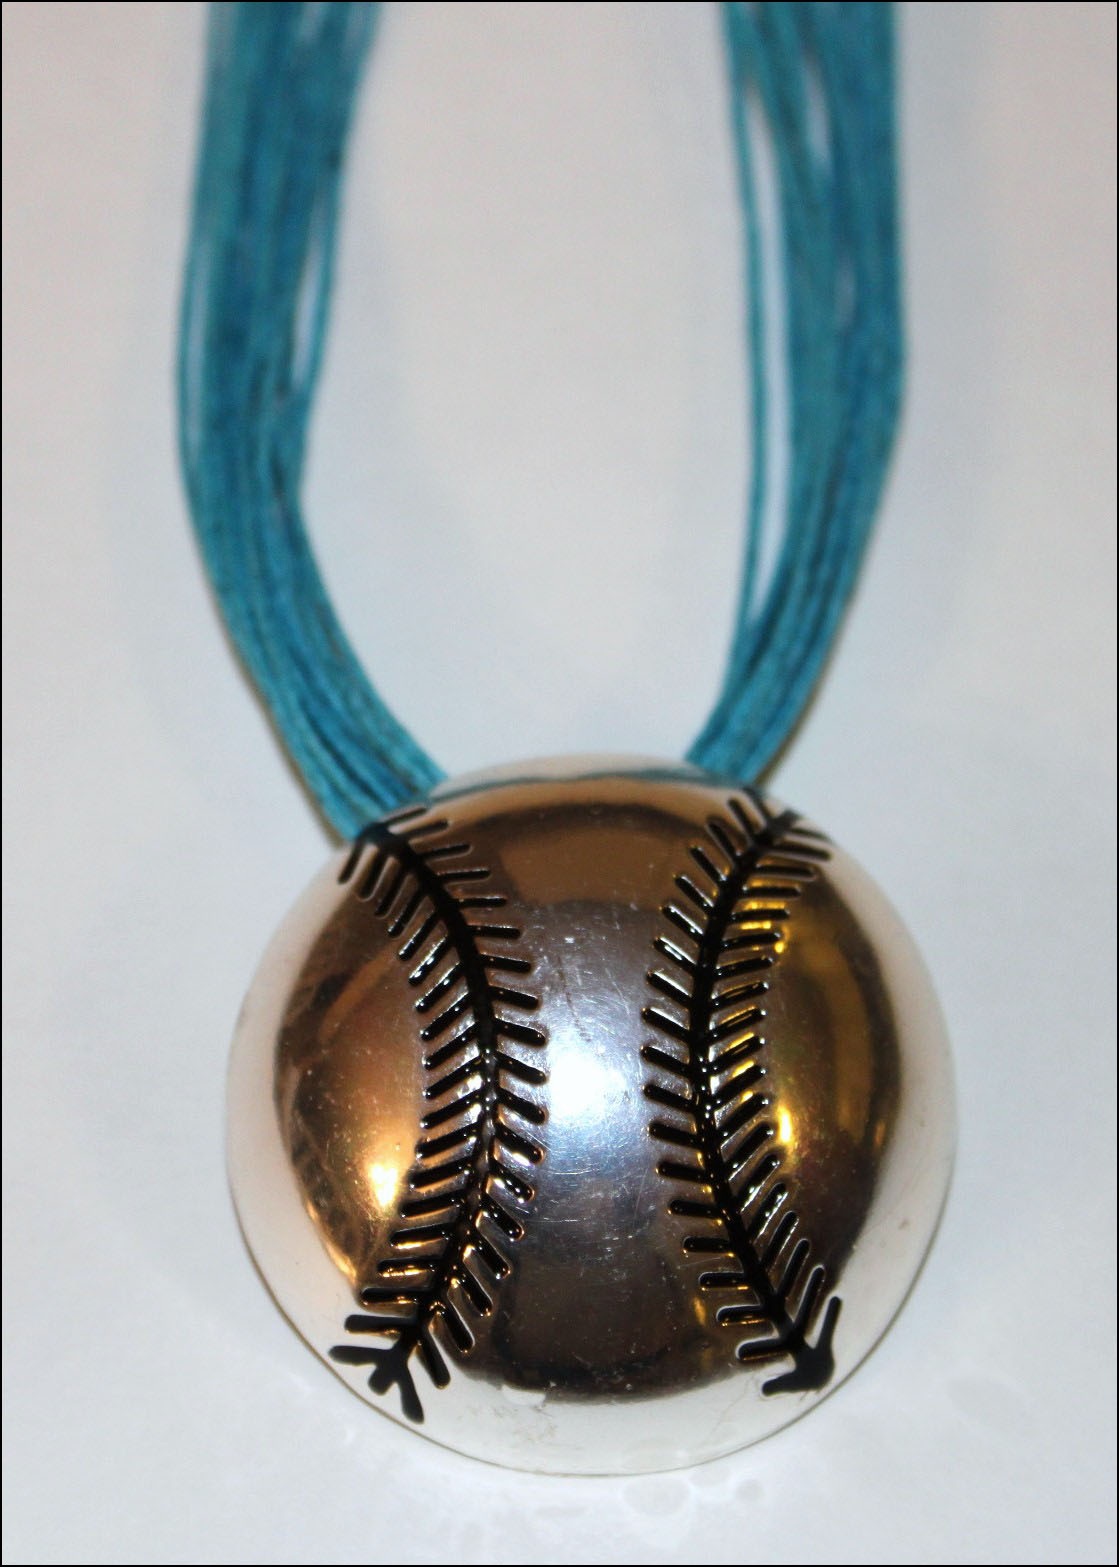 Silver Baseball Clip-on Pendant with Teal Blue Multistrand Necklace